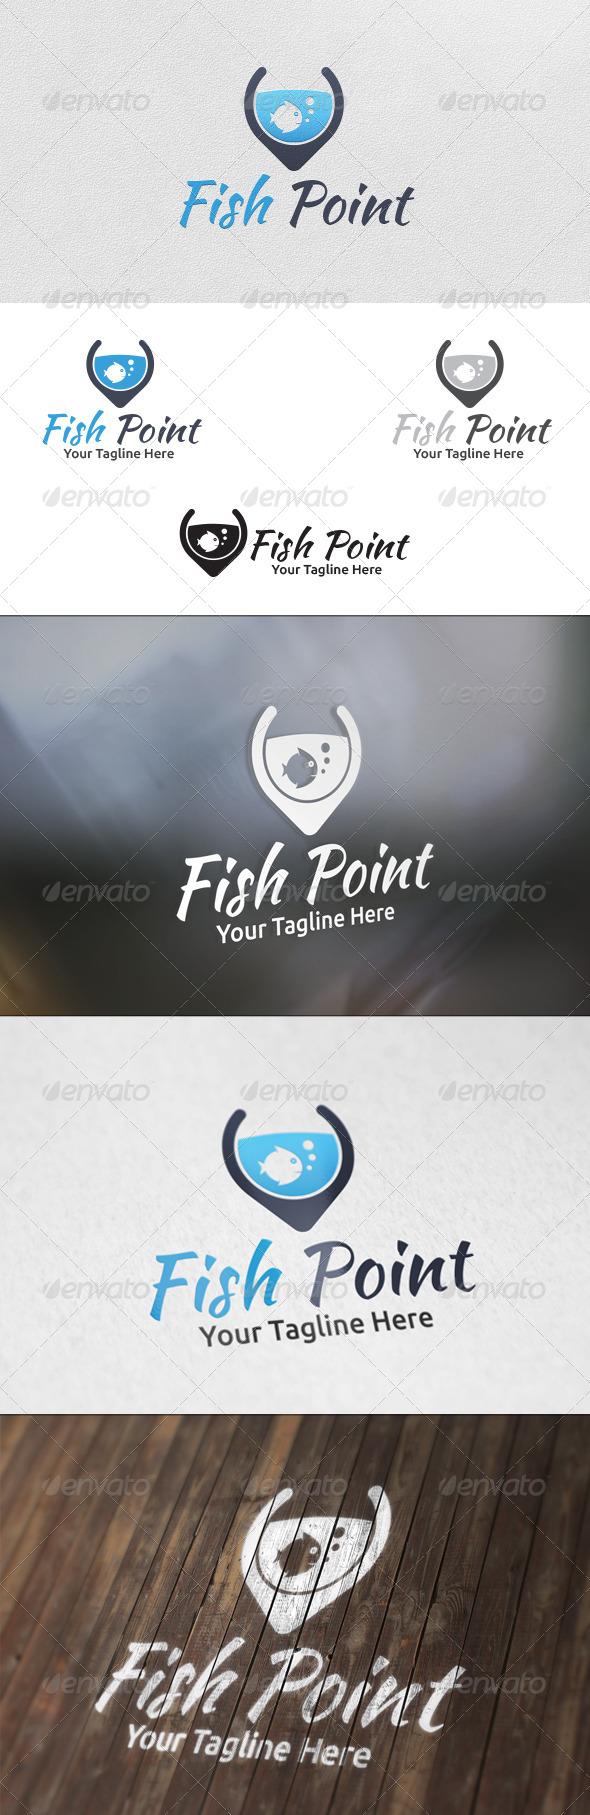 GraphicRiver Fish Point Logo Template 5922005